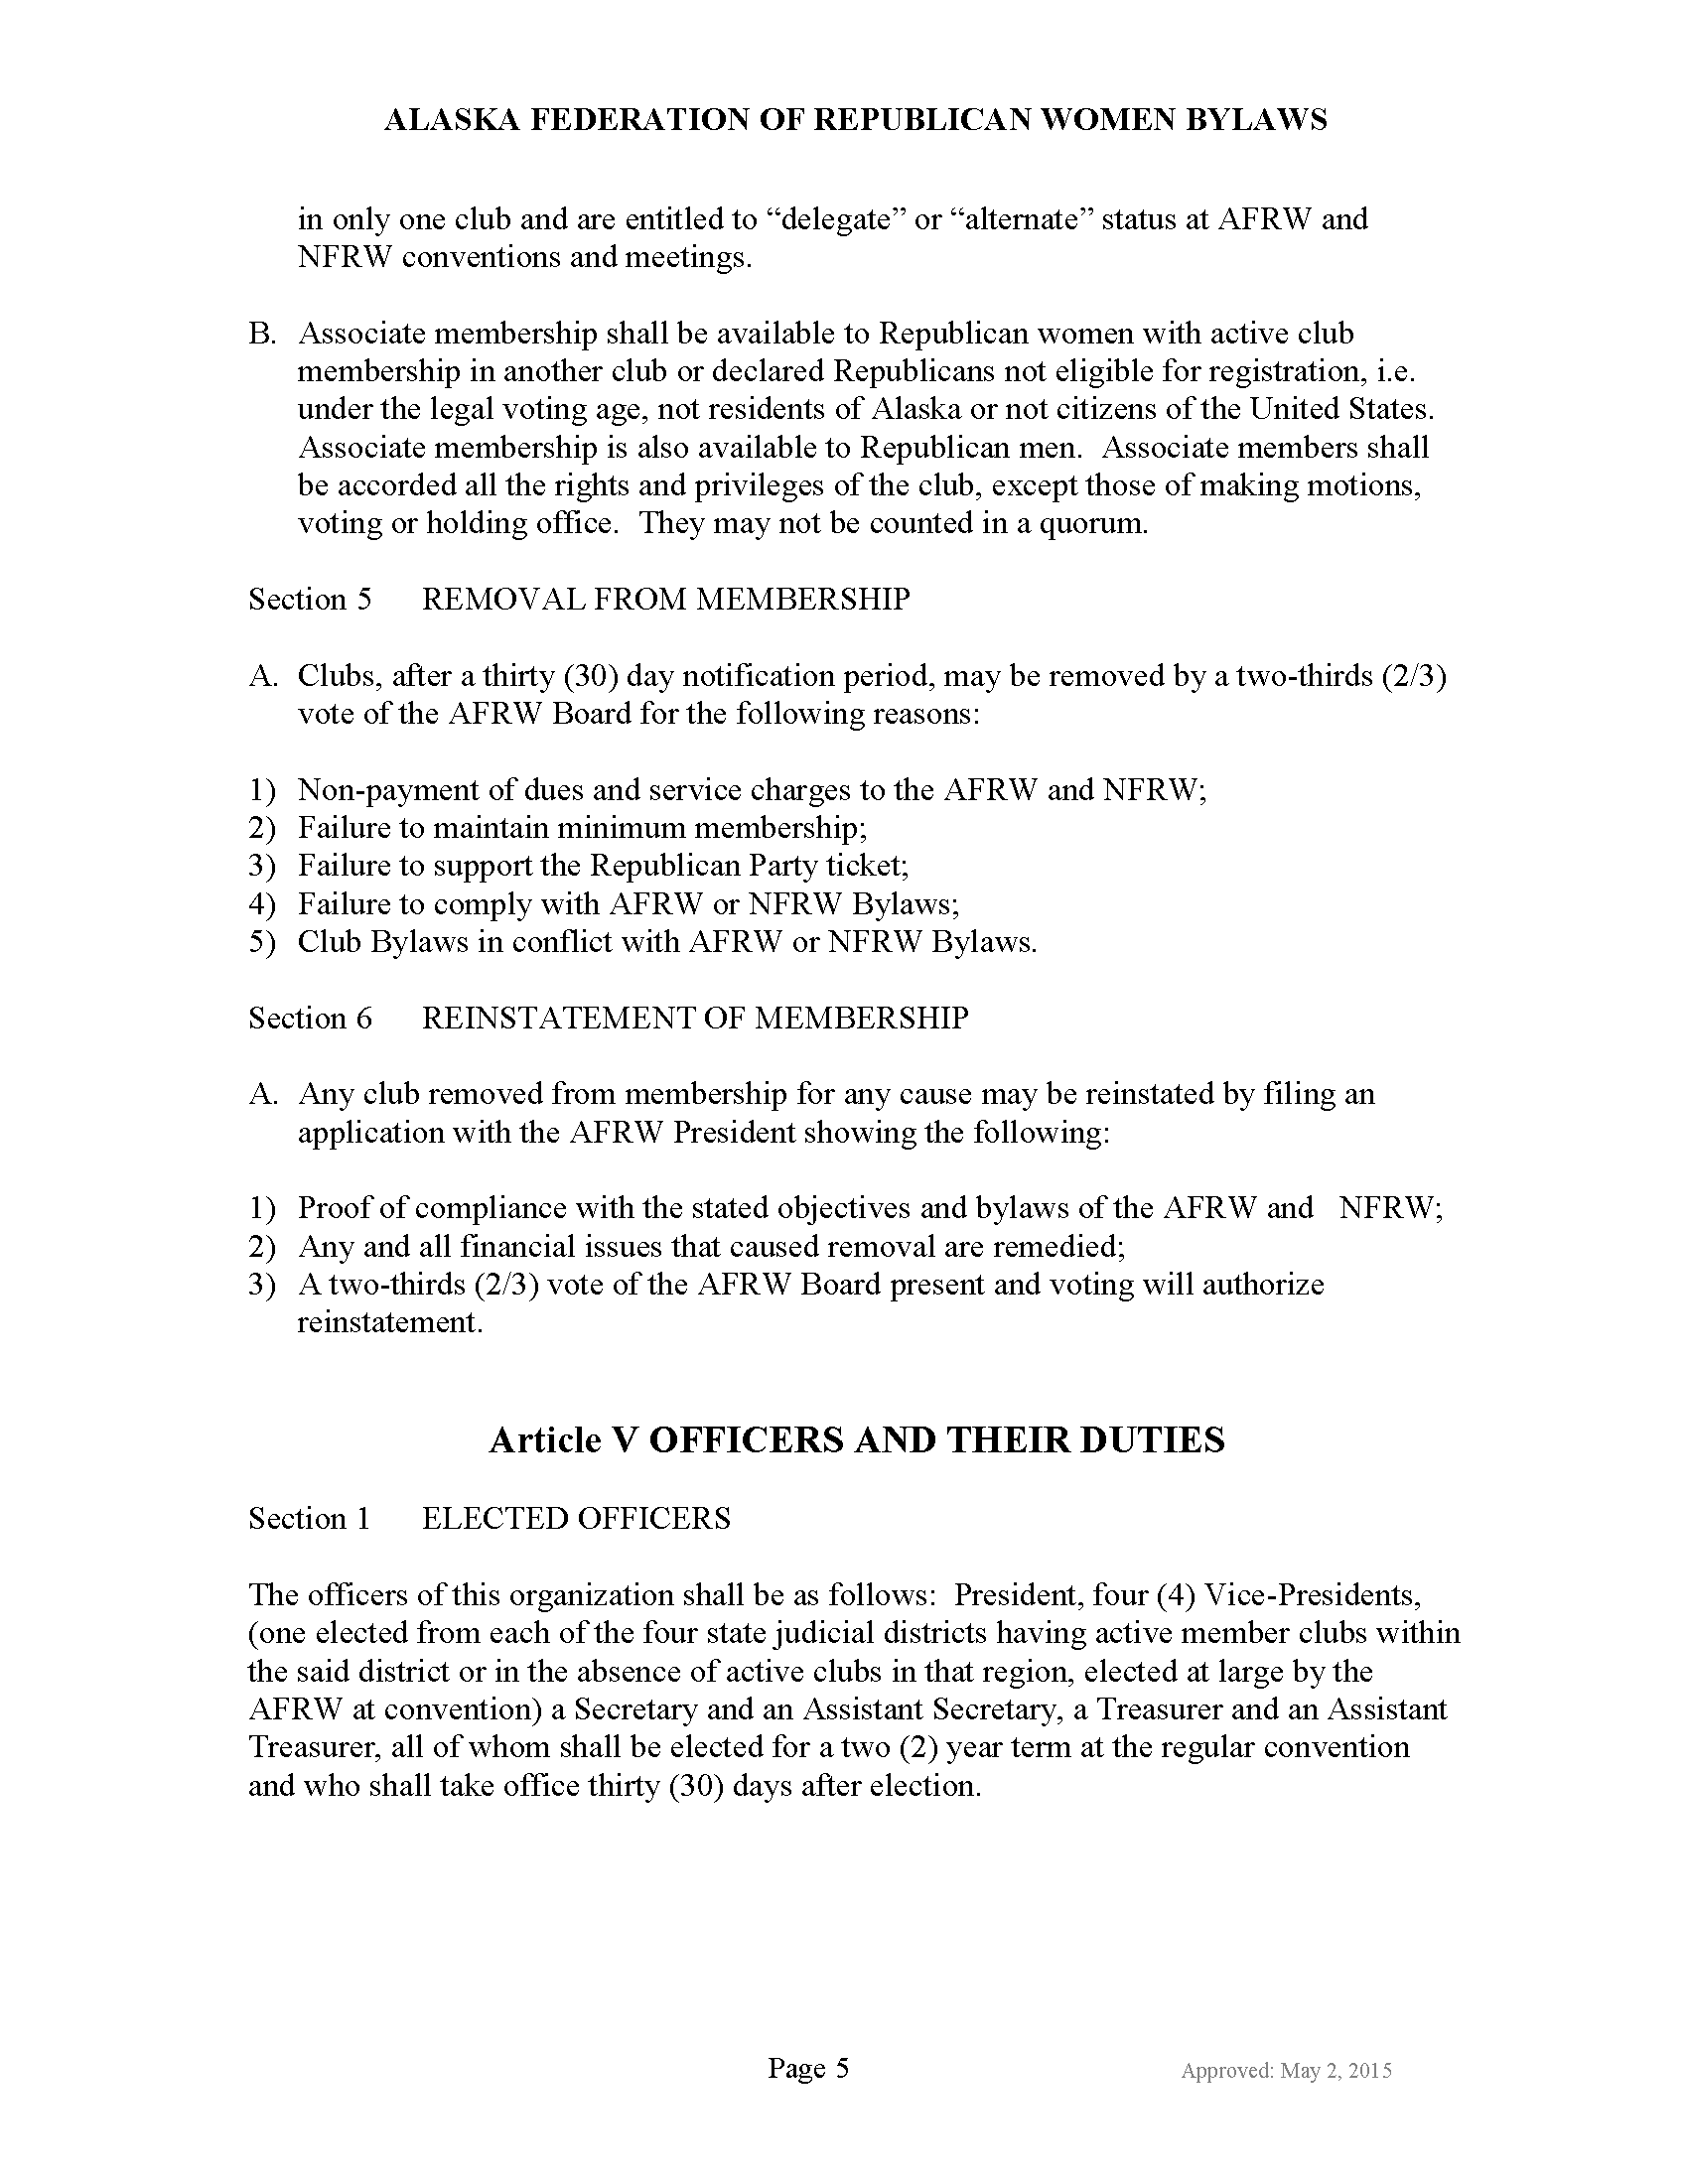 AFRW_Bylaws_ARWC_Approved_May_2__2015__(1)_Page_05.png